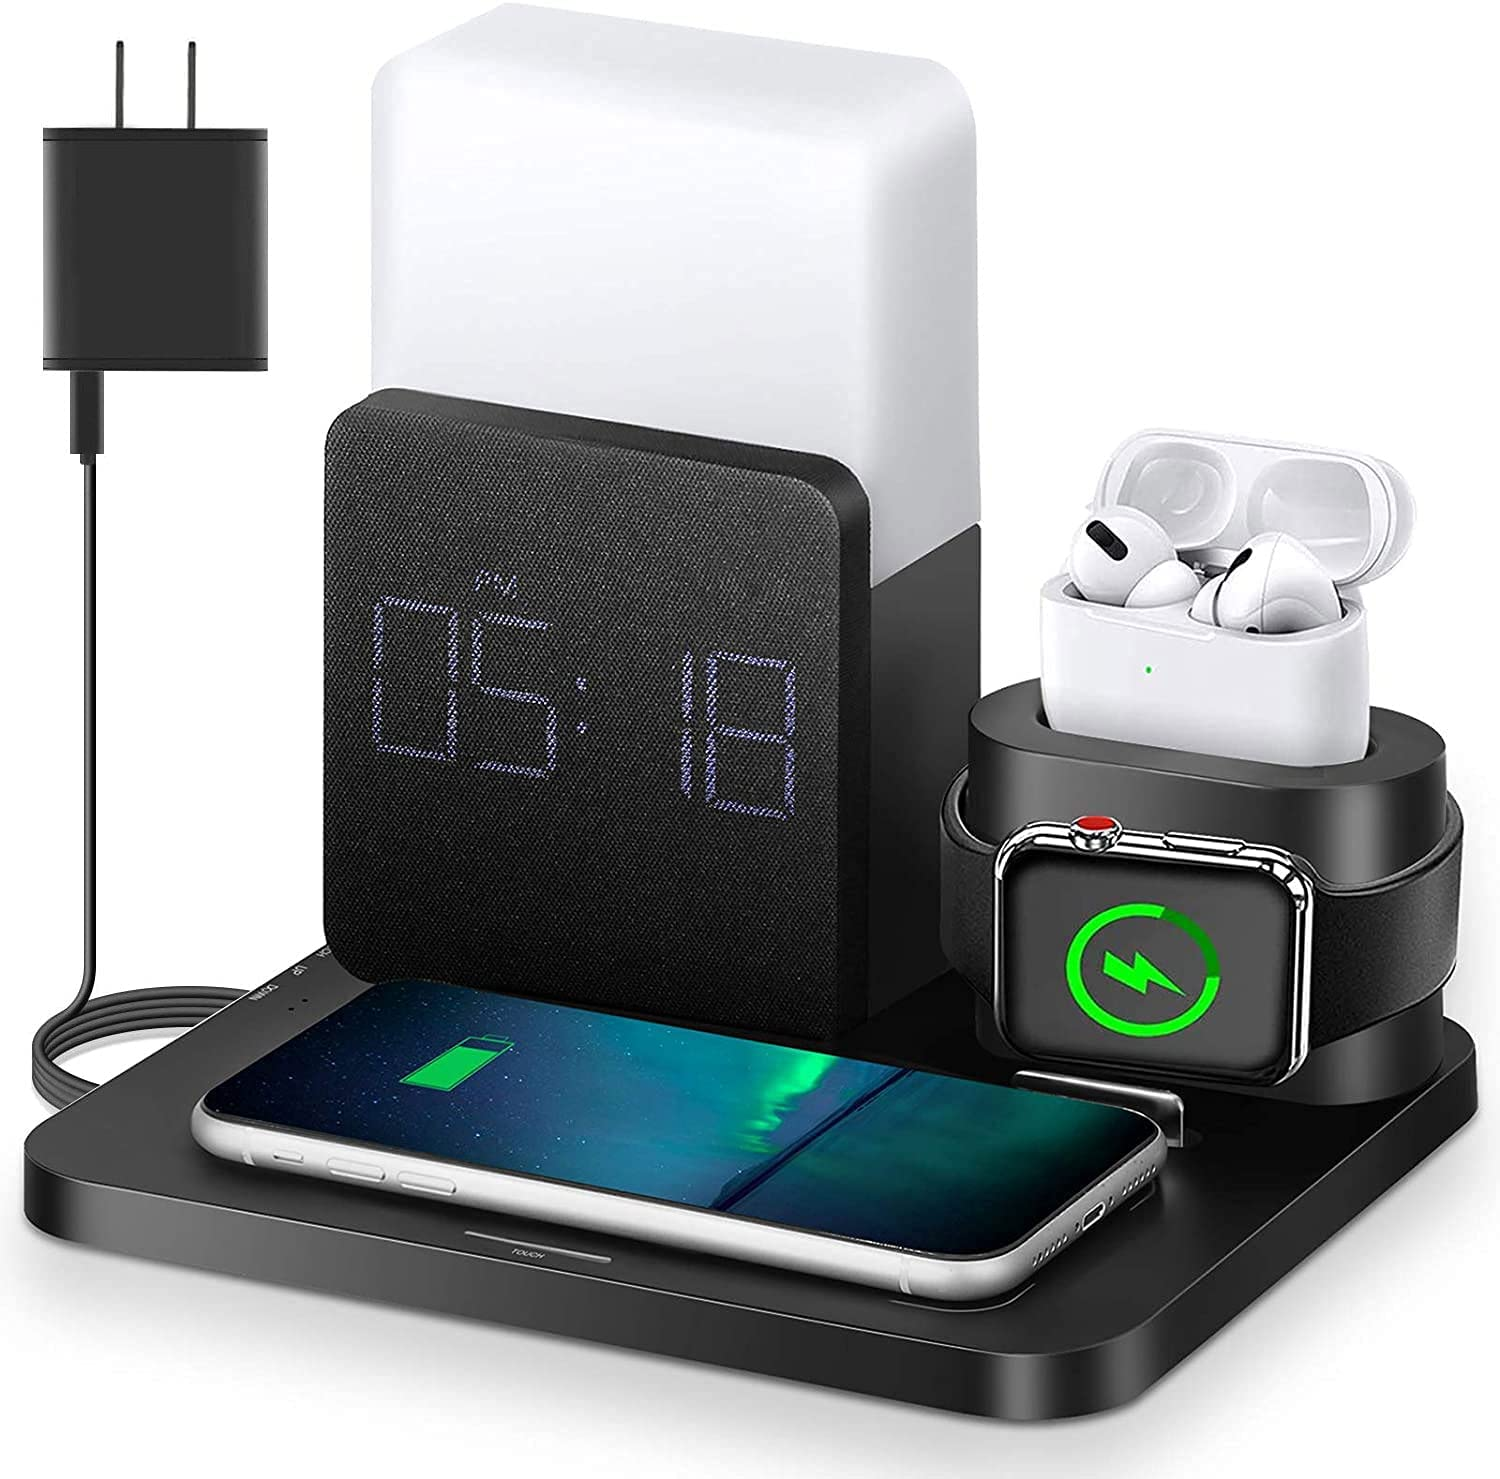 Wireless Charger,3 in 1 Fast Charging Station with Digital Alarm Clock,Night Light,Compatible for Apple Watch iPhone 12, 12 Mini, 12 Pro Max, SE 2020, 11, 11 Pro, AirPods, Galaxy S20